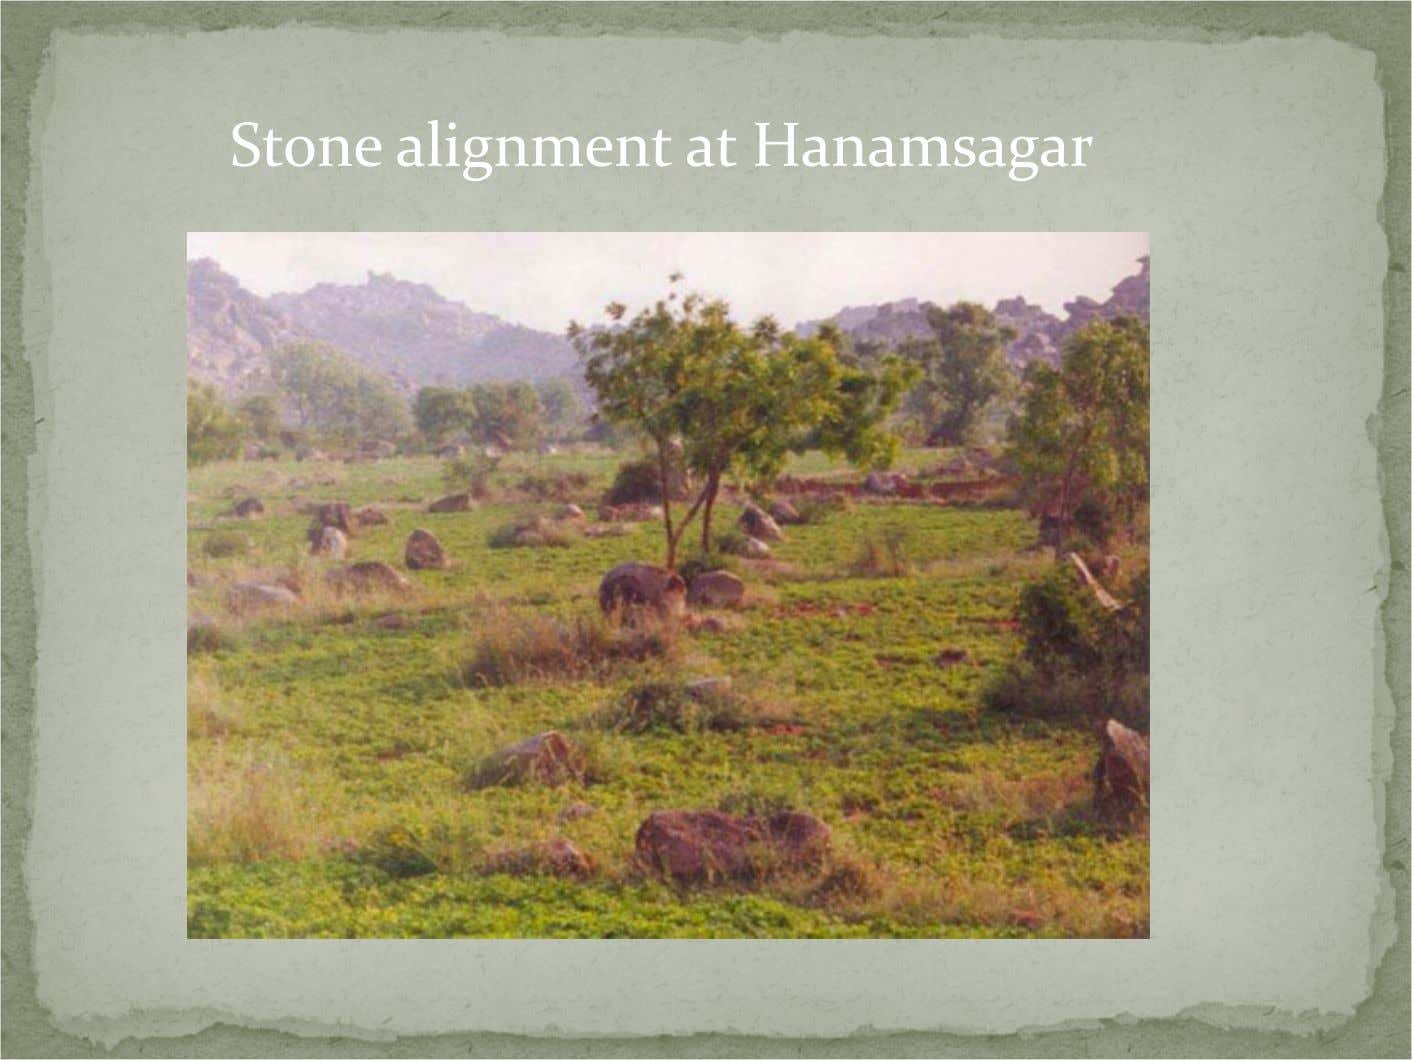 Stone alignment at Hanamsagar